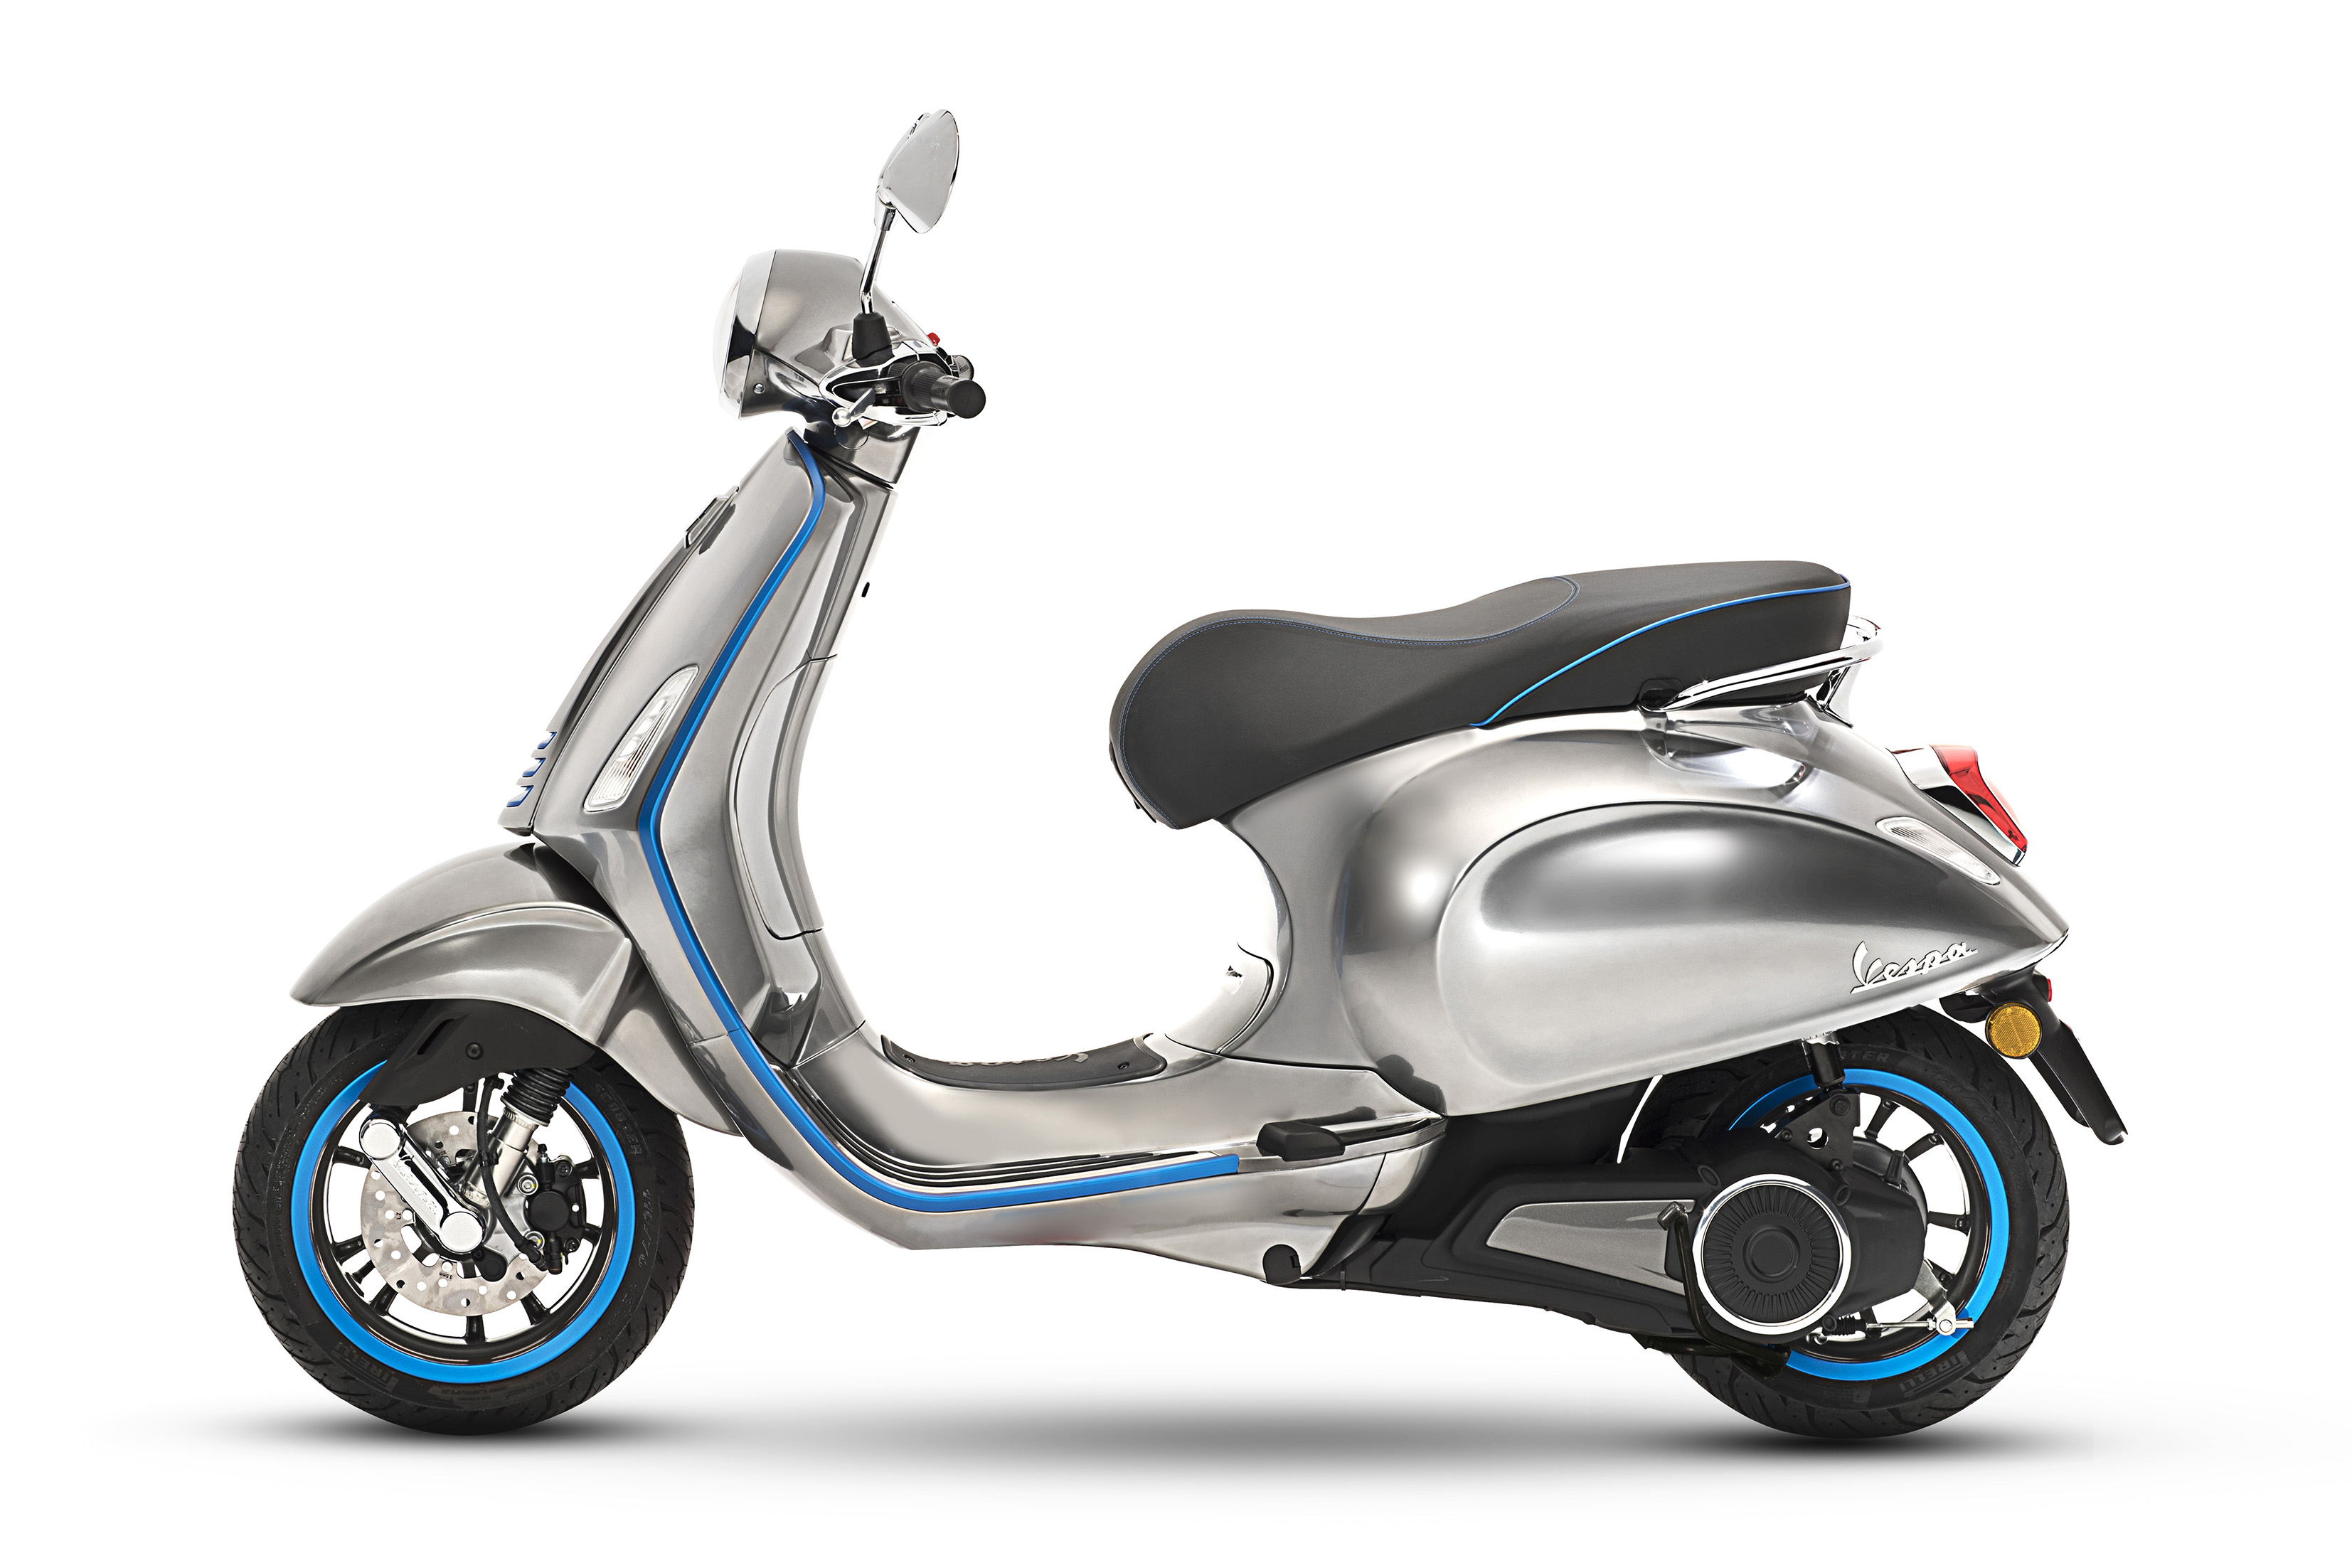 Piaggio to roll out new electric scooter 'Vespa Elettrica' in 2018